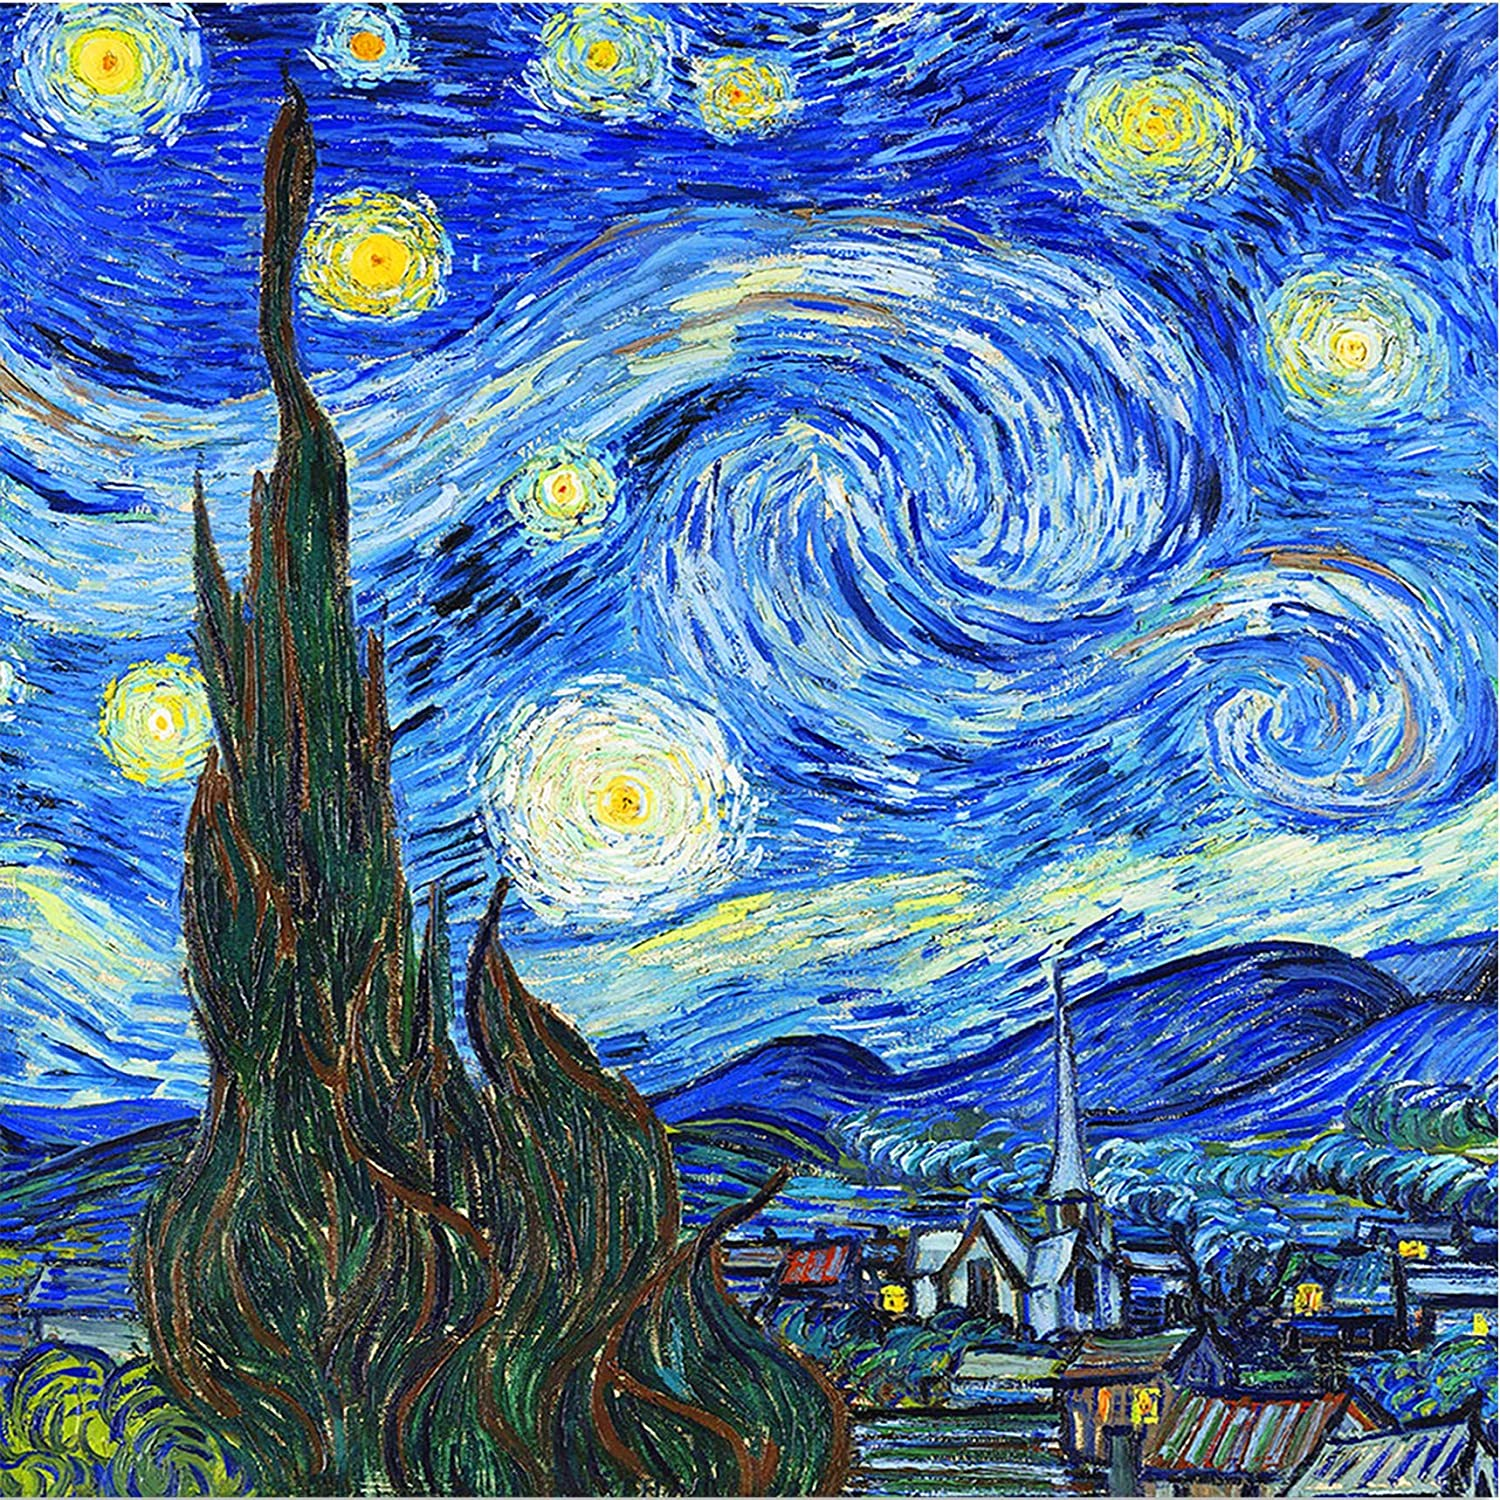 Creative Diamond Painting Kits for Adults, 5D Crystal Diamonds Art with Accessories Tools, Starry Night Picture DIY Art Dotz Craft for Home Décor, Ideal Gift or Self Painting